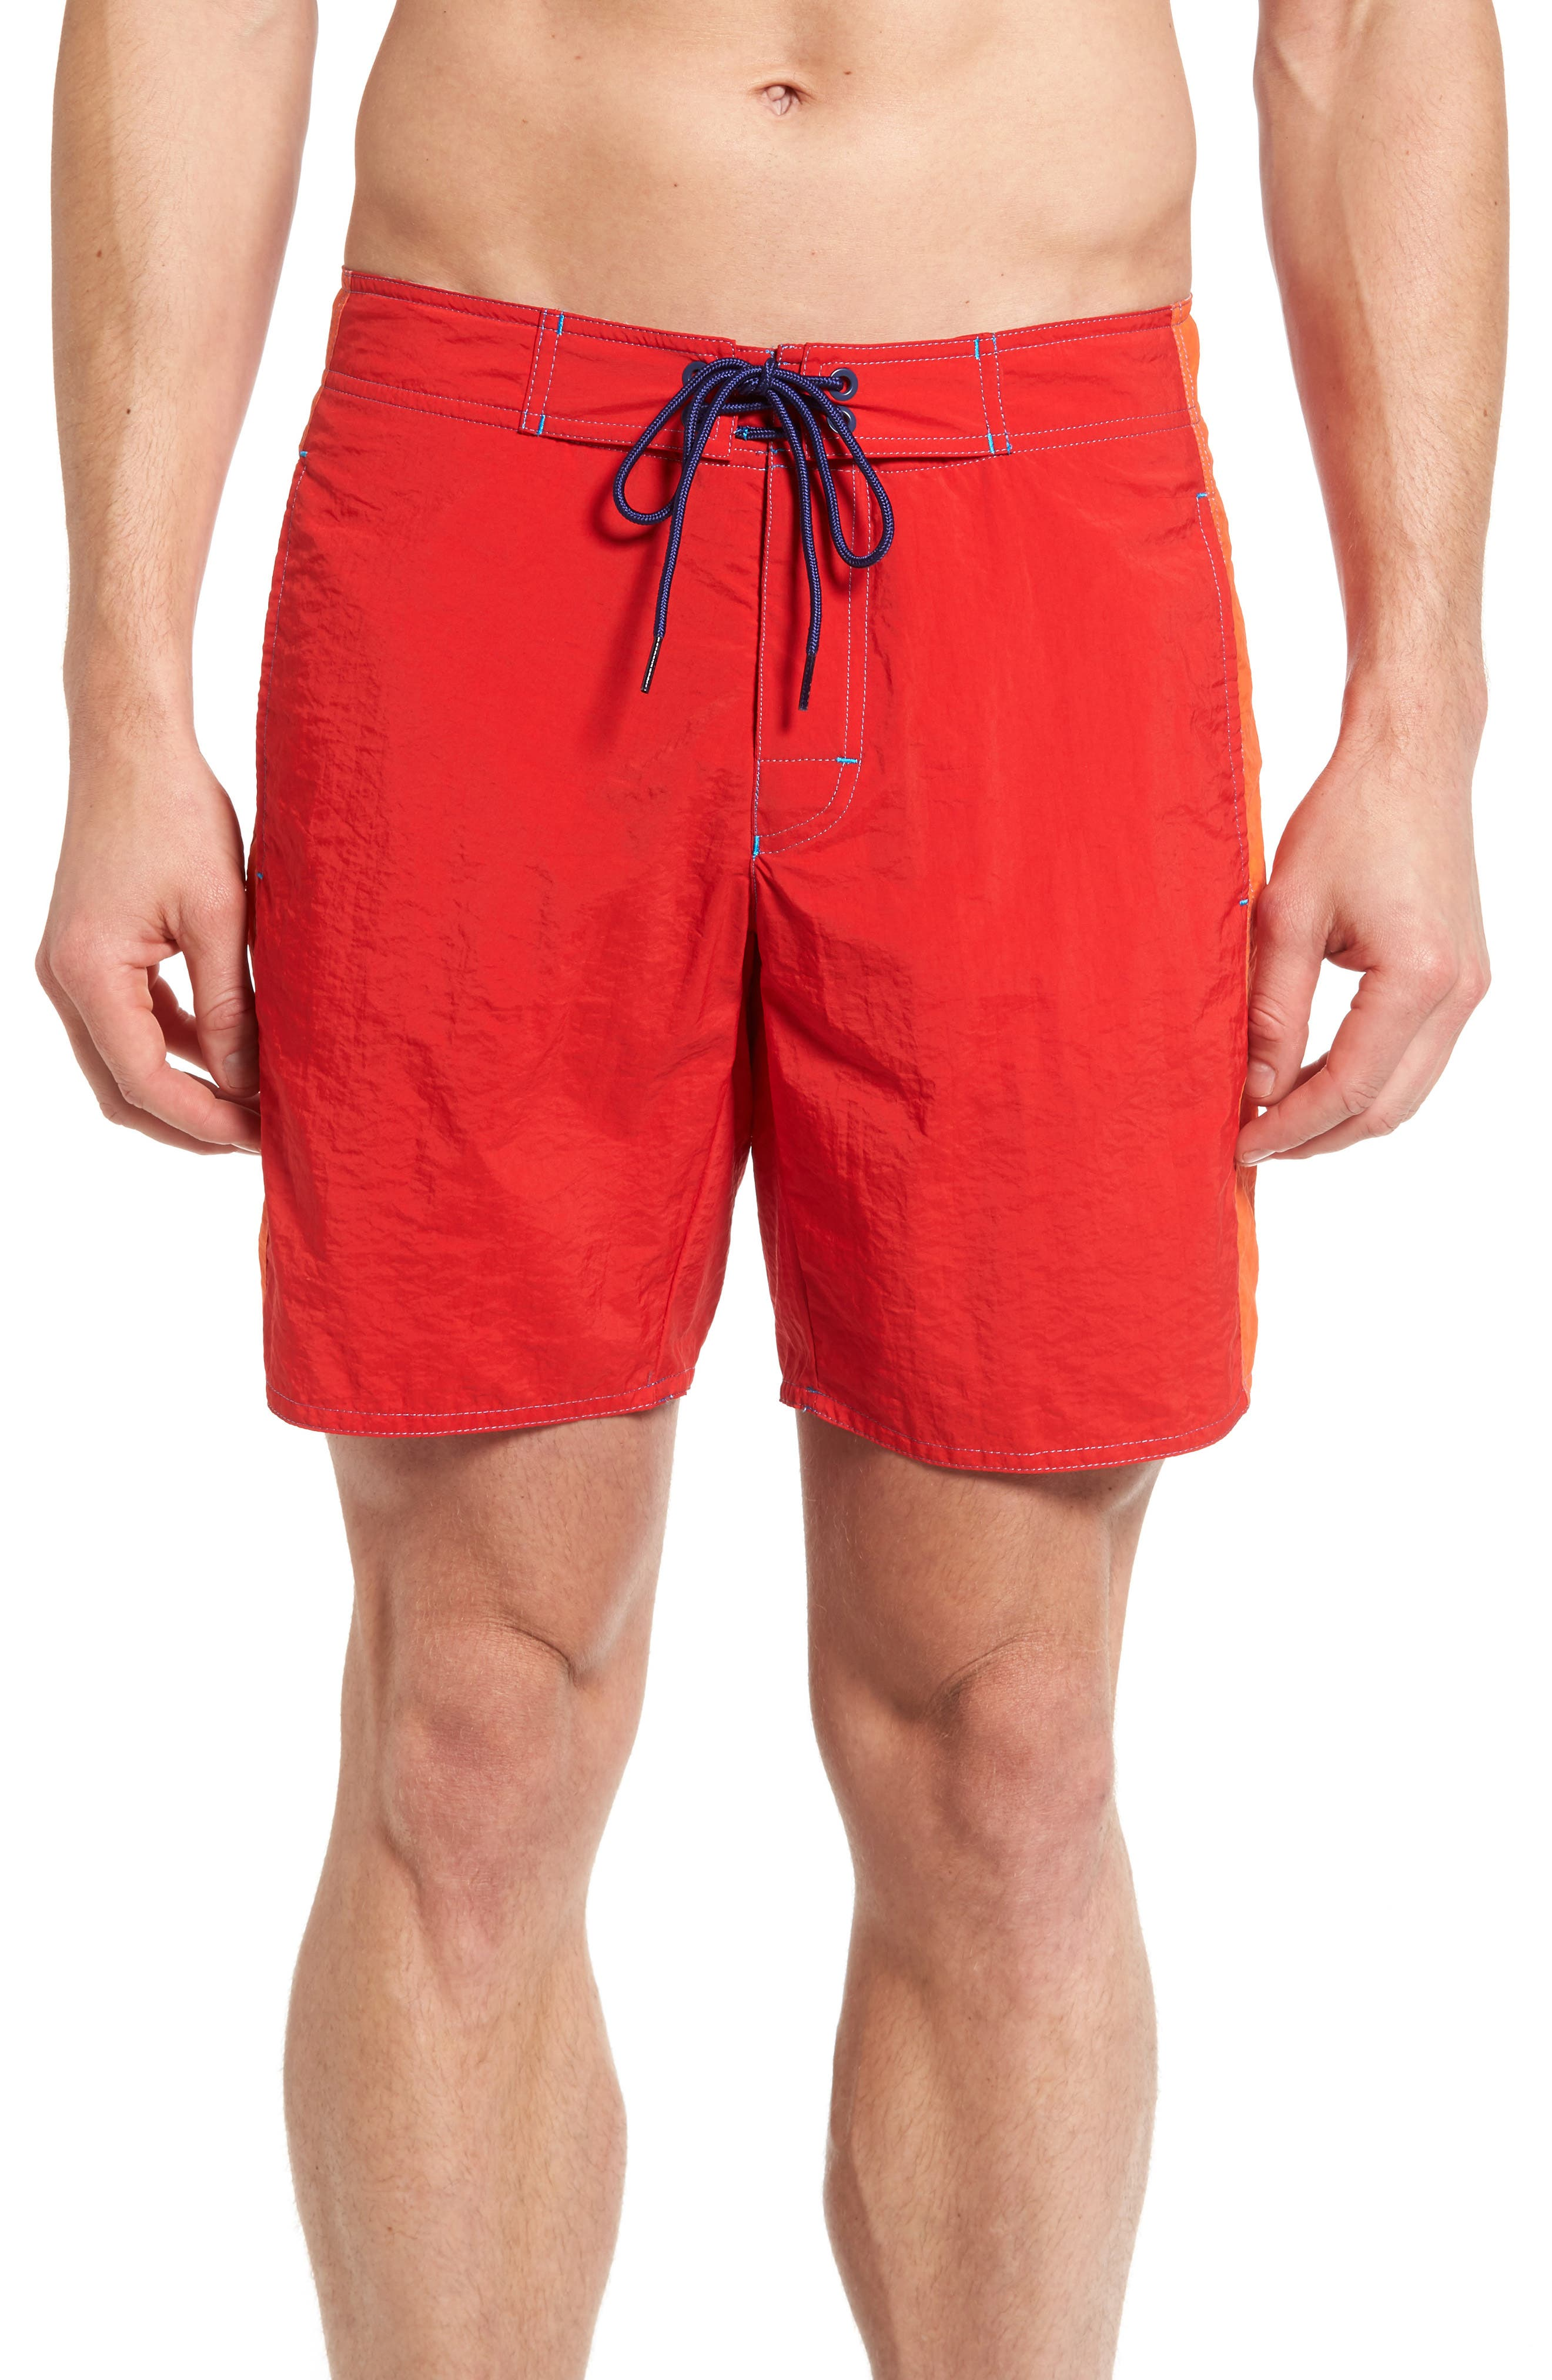 Acer Swim Trunks,                         Main,                         color, Red